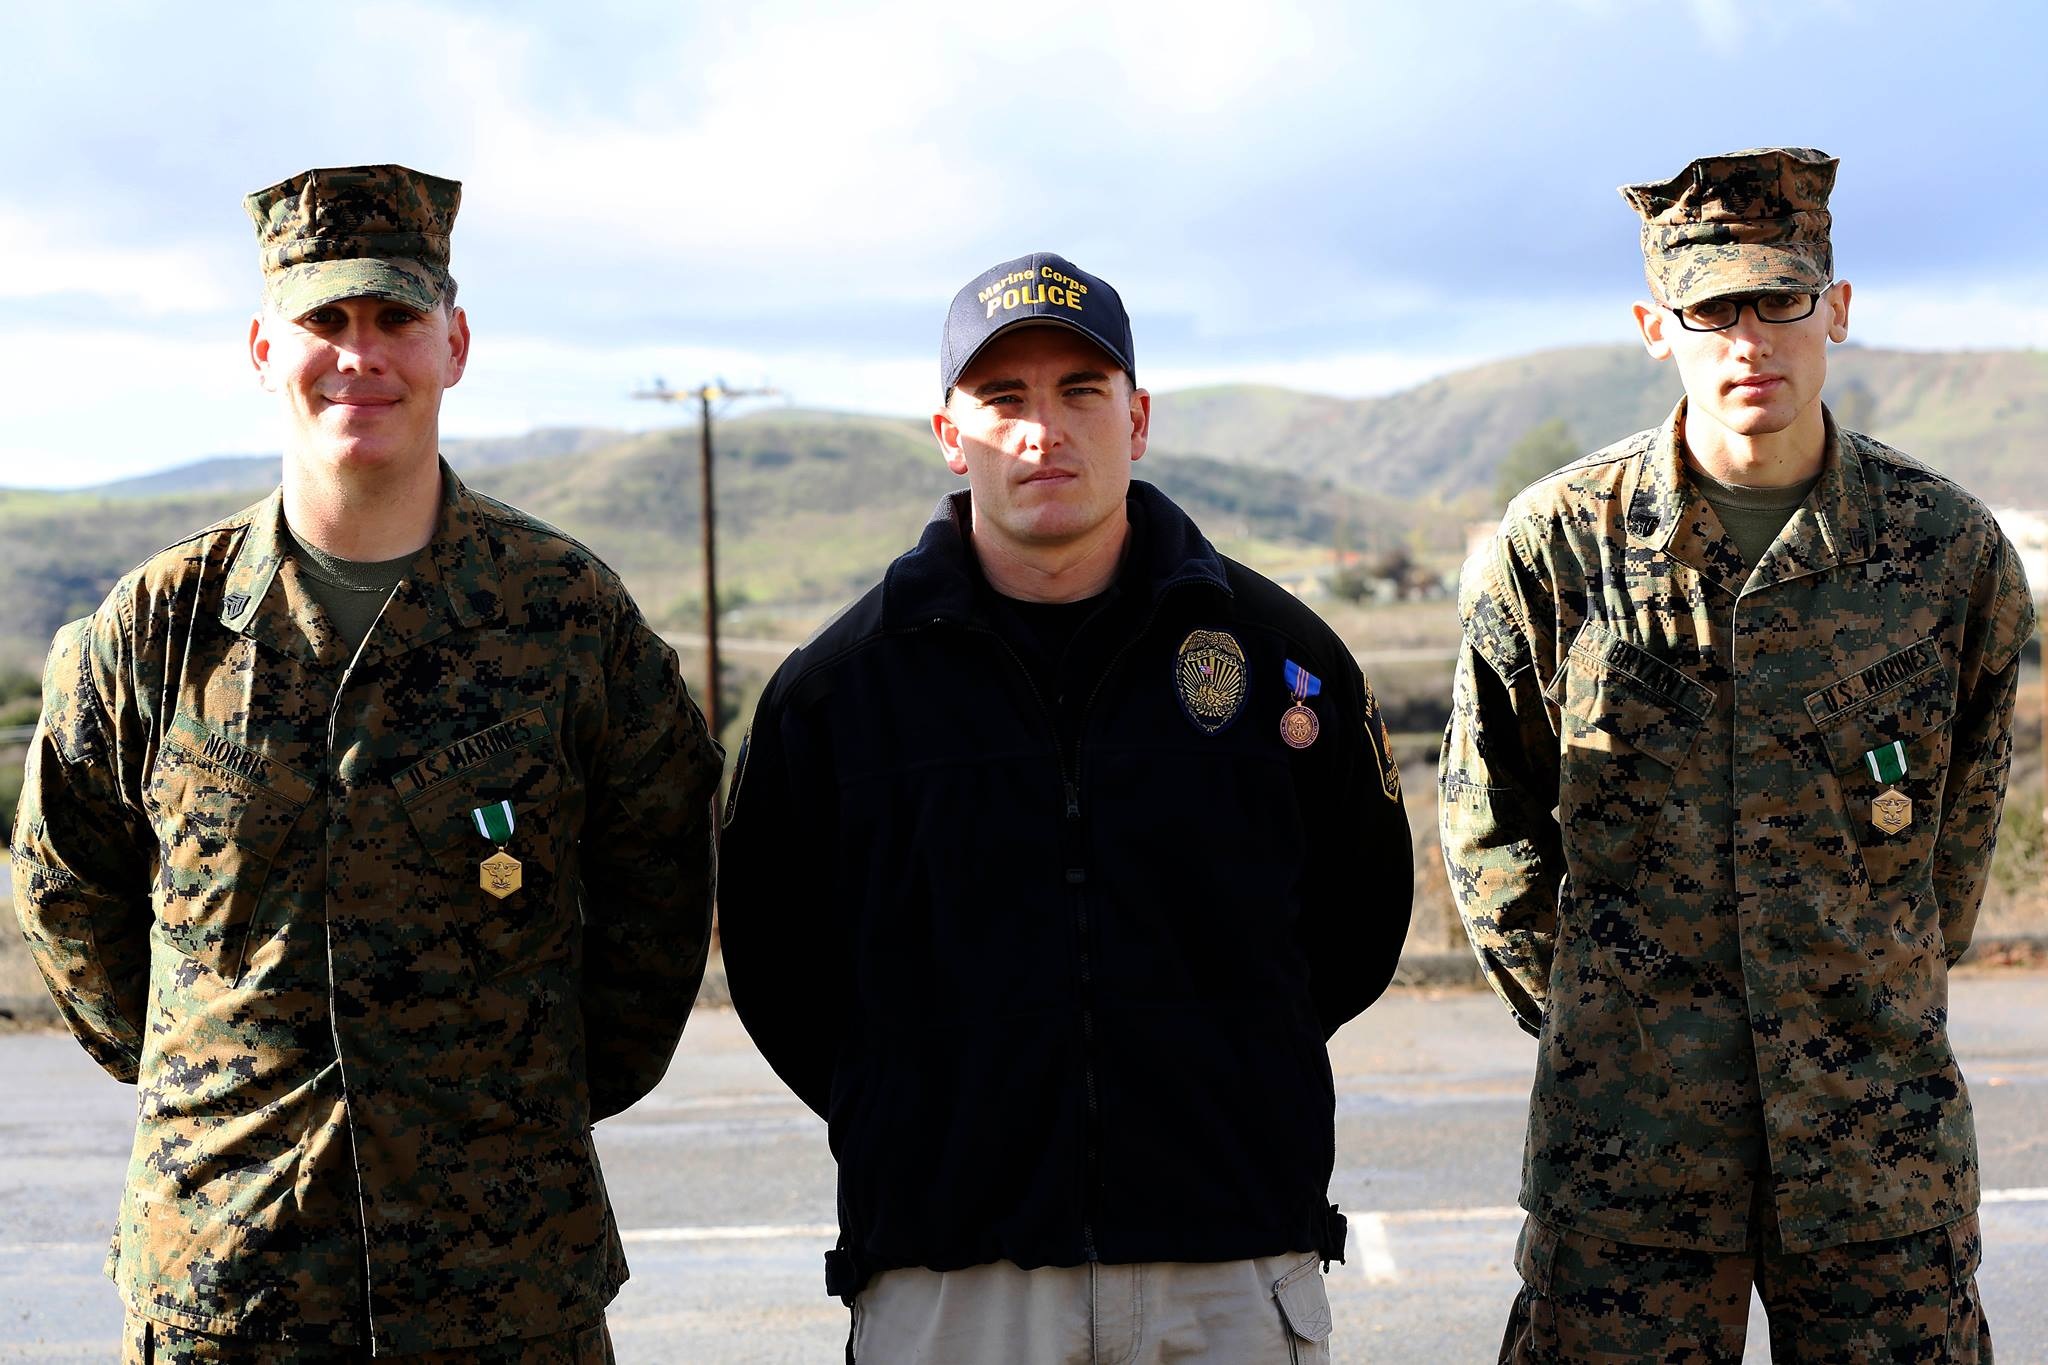 Military and civilian policemen awarded for heroic deed > Marine ...